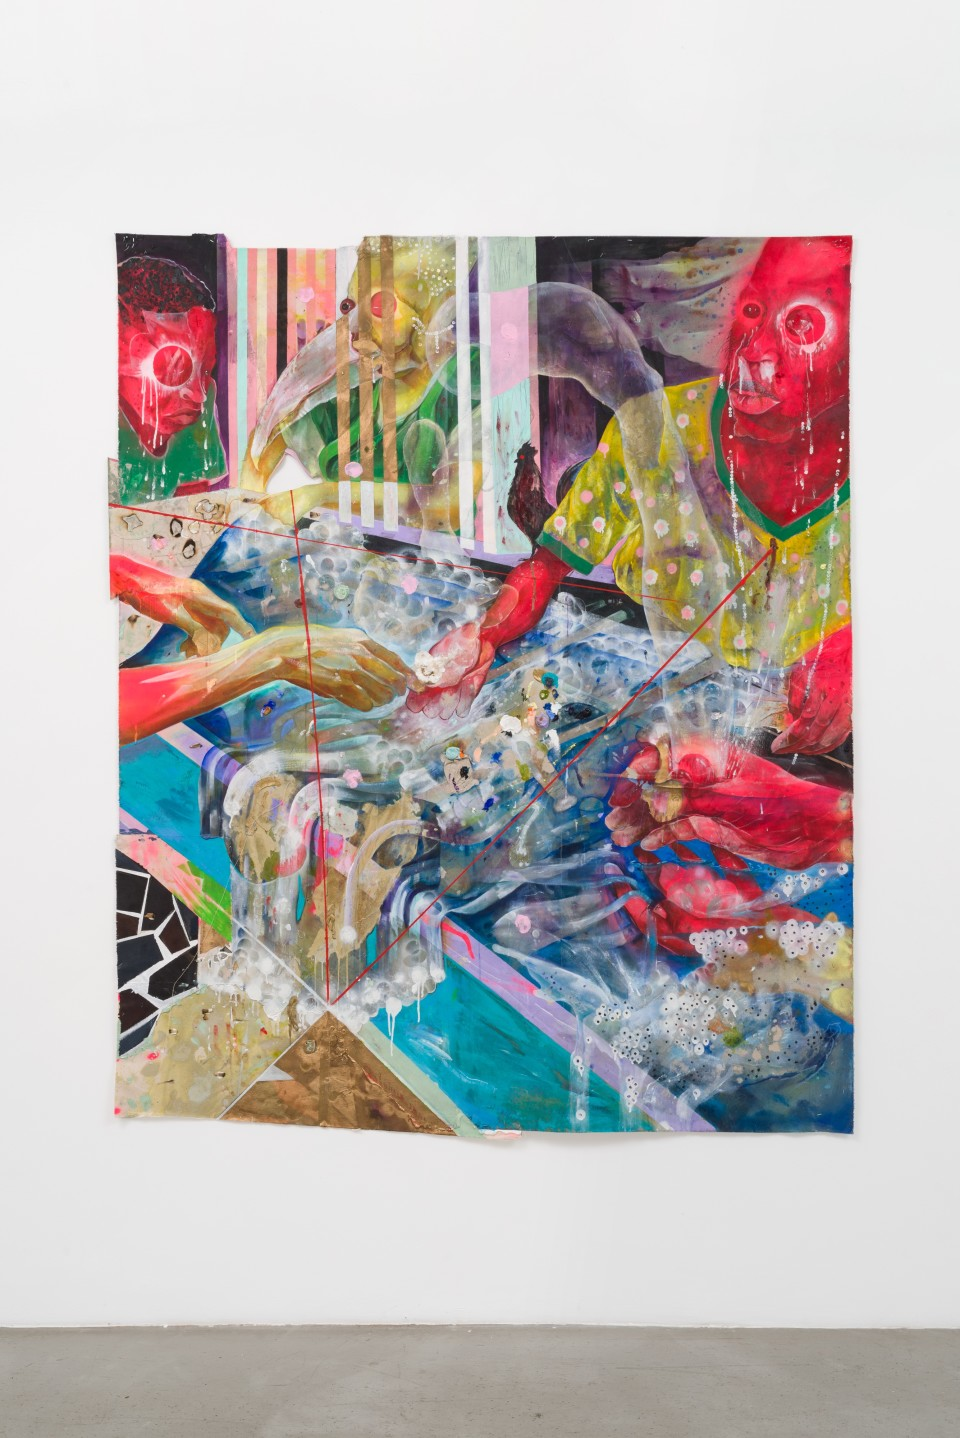 Image: Lavar Munroe  Bathwater, 2020  signed verso  dollar bills, sandwich bag, stem, staples, blunt, spray paint and acrylic on canvas  83 1/2 x 68 1/2 inches (212.1 x 174 cm)